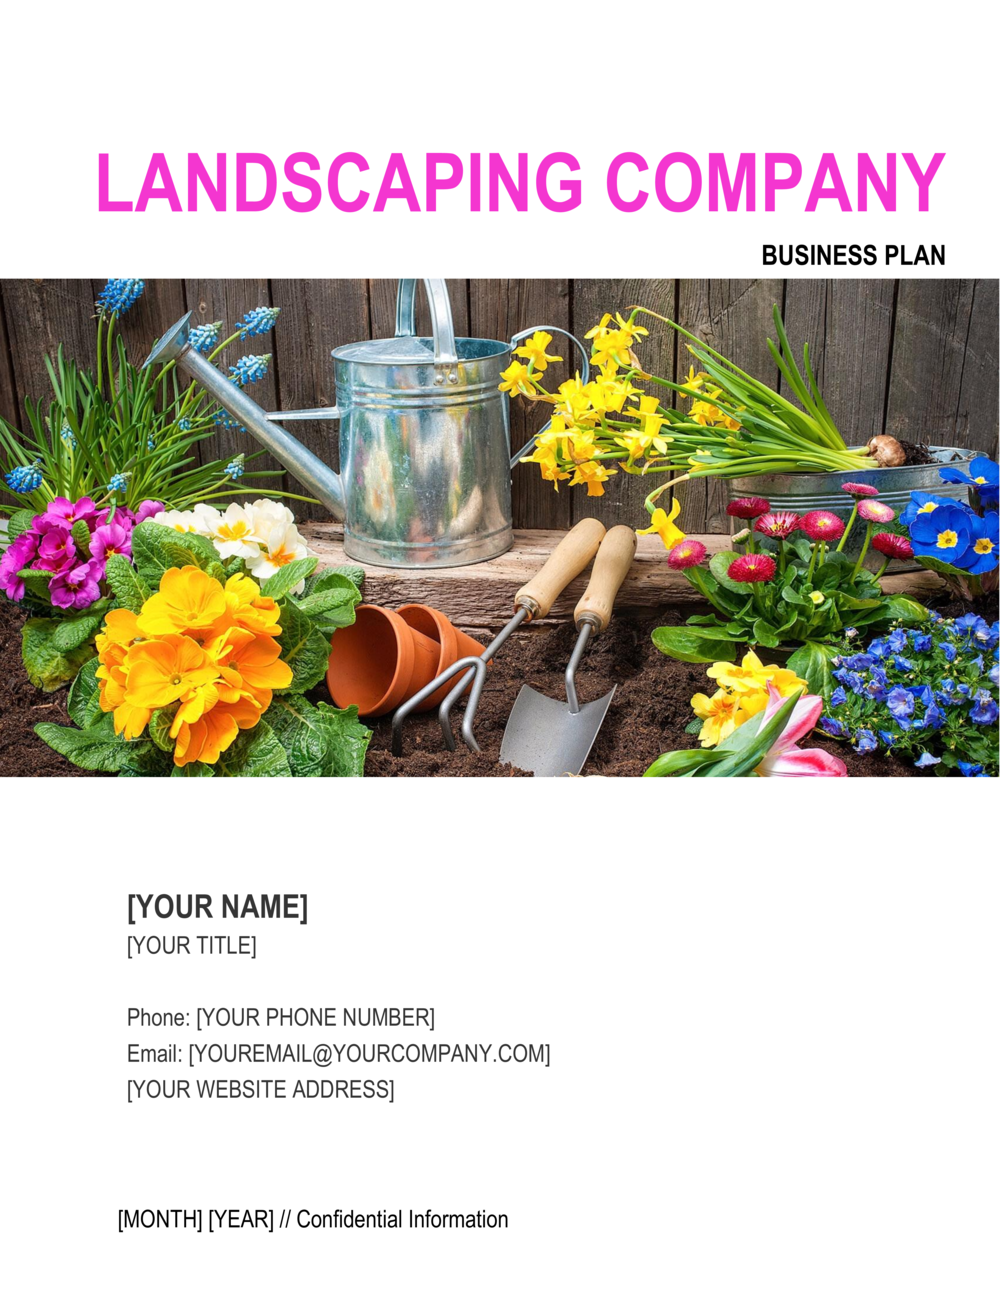 Business-in-a-Box's Landscaping Company Business Plan Template